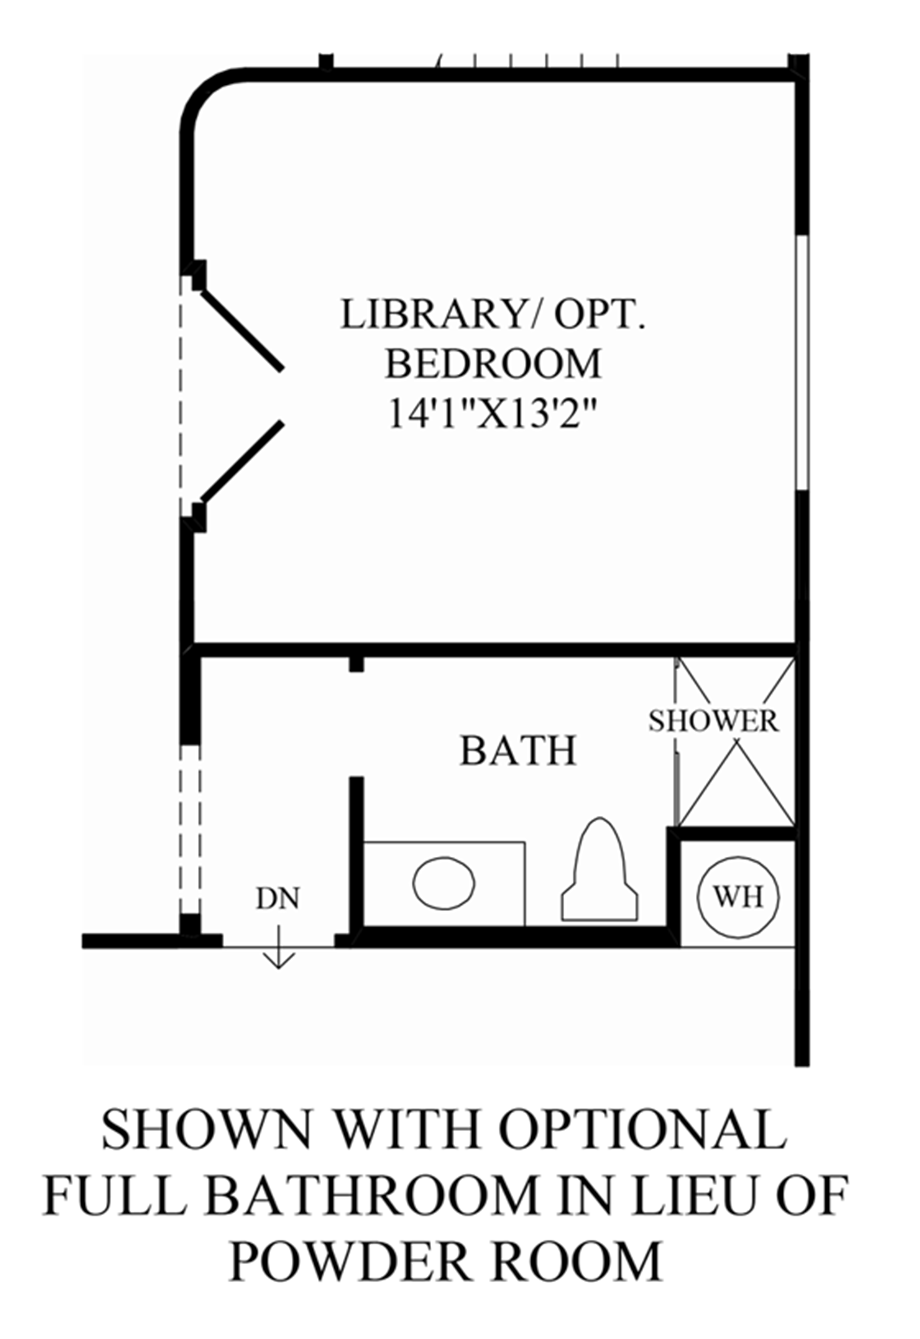 Optional Full Bathroom ILO Powder Room Floor Plan